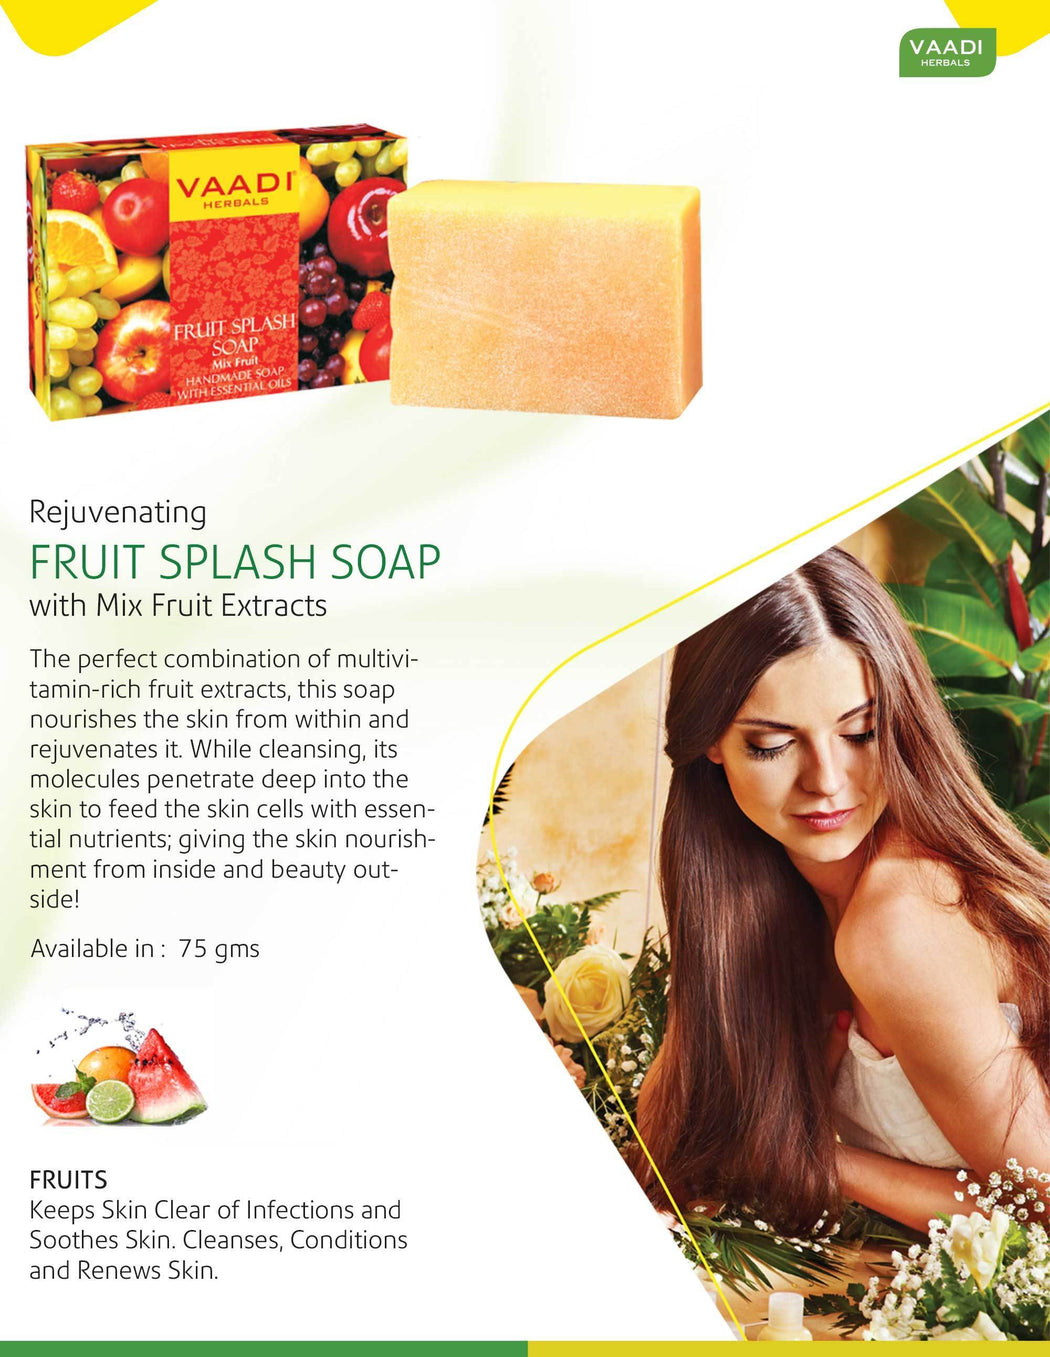 Organic Fruit Splash Soap with Orange, Peach, Lemon & Green Apple - Multivitamin Rich - Keeps Skin Nourished (3 x 75 gms/2.7 oz)